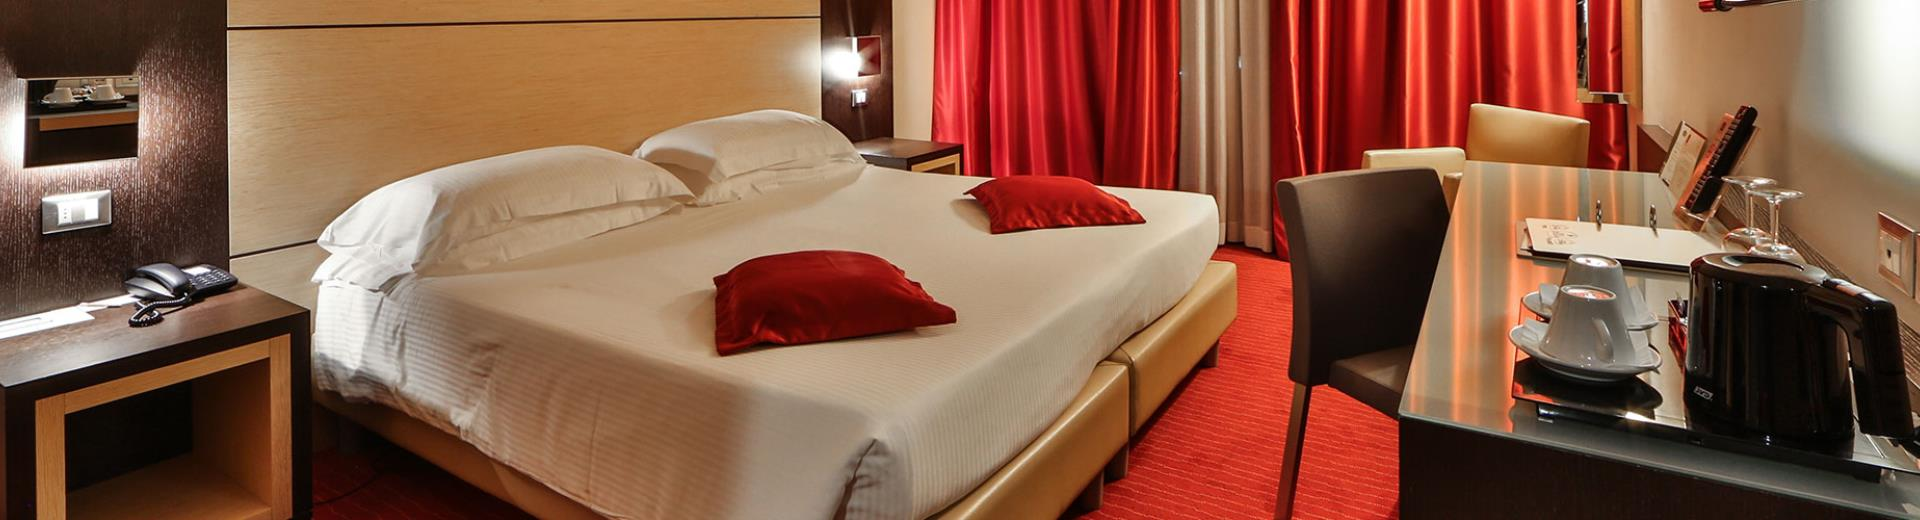 Looking for a hotel for your stay in Padova (PD)? Book/reserve at the Best Western Plus Hotel Galileo